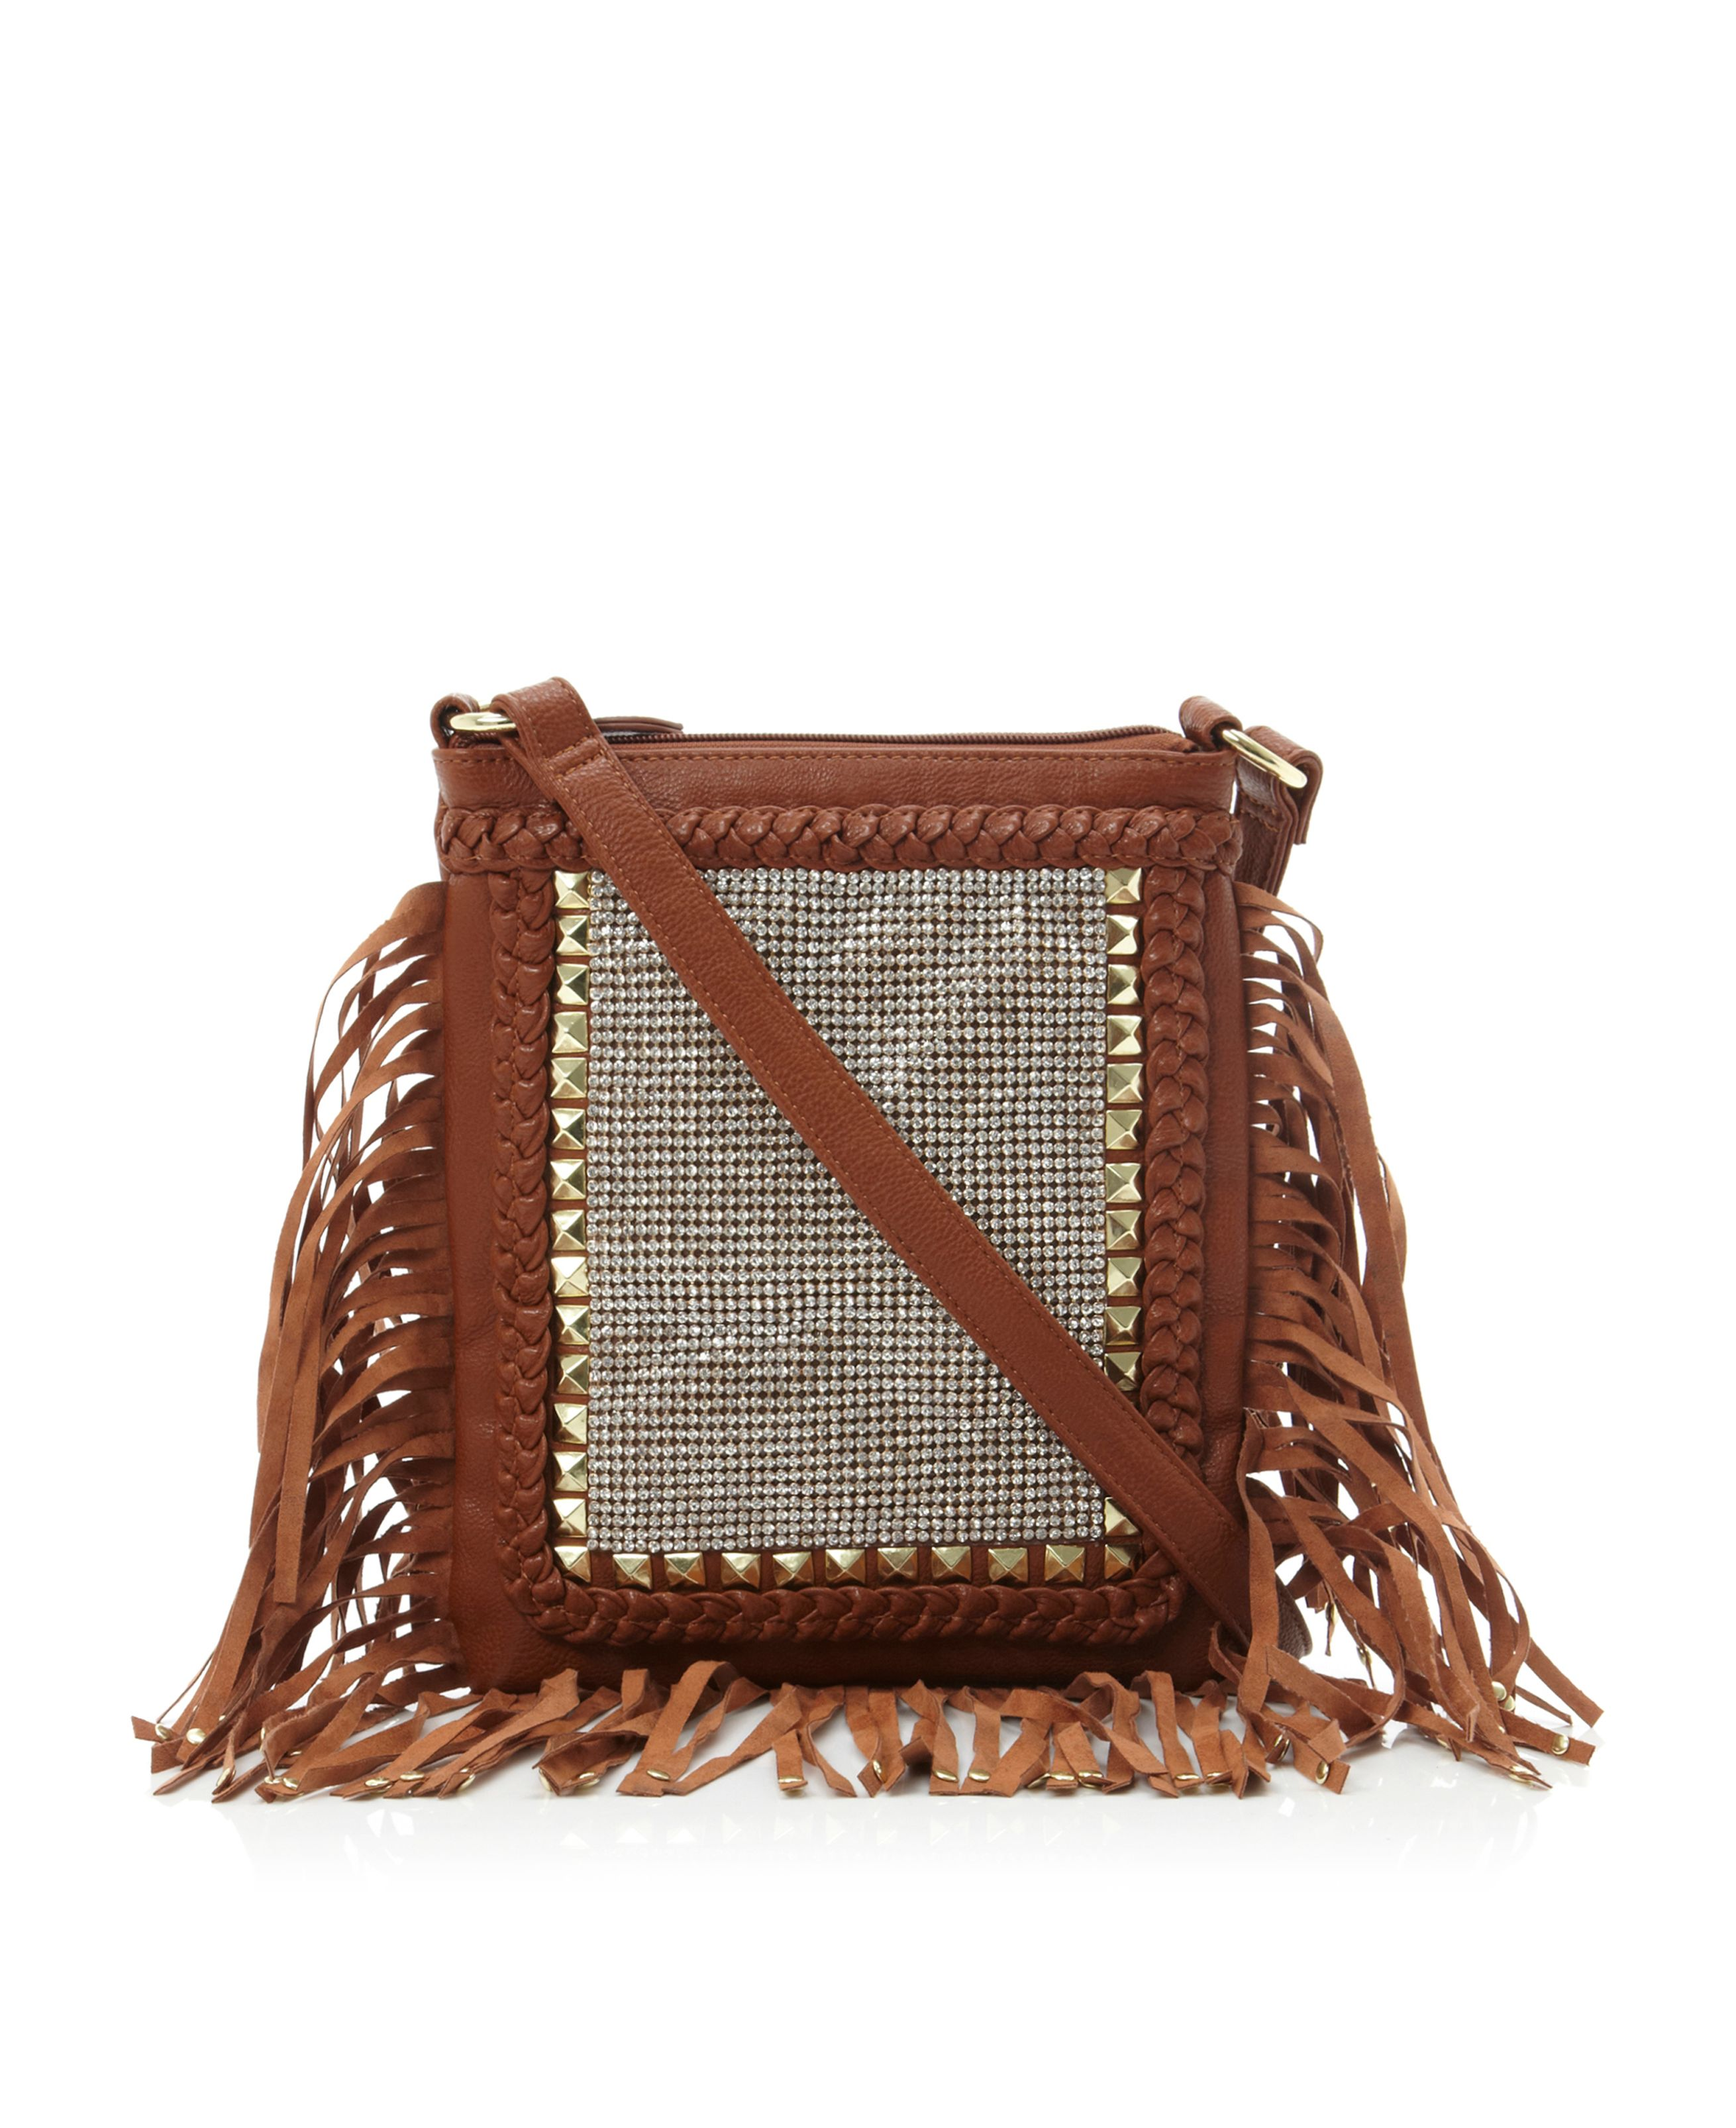 Bjosiee stud fringe cross shoulder bag